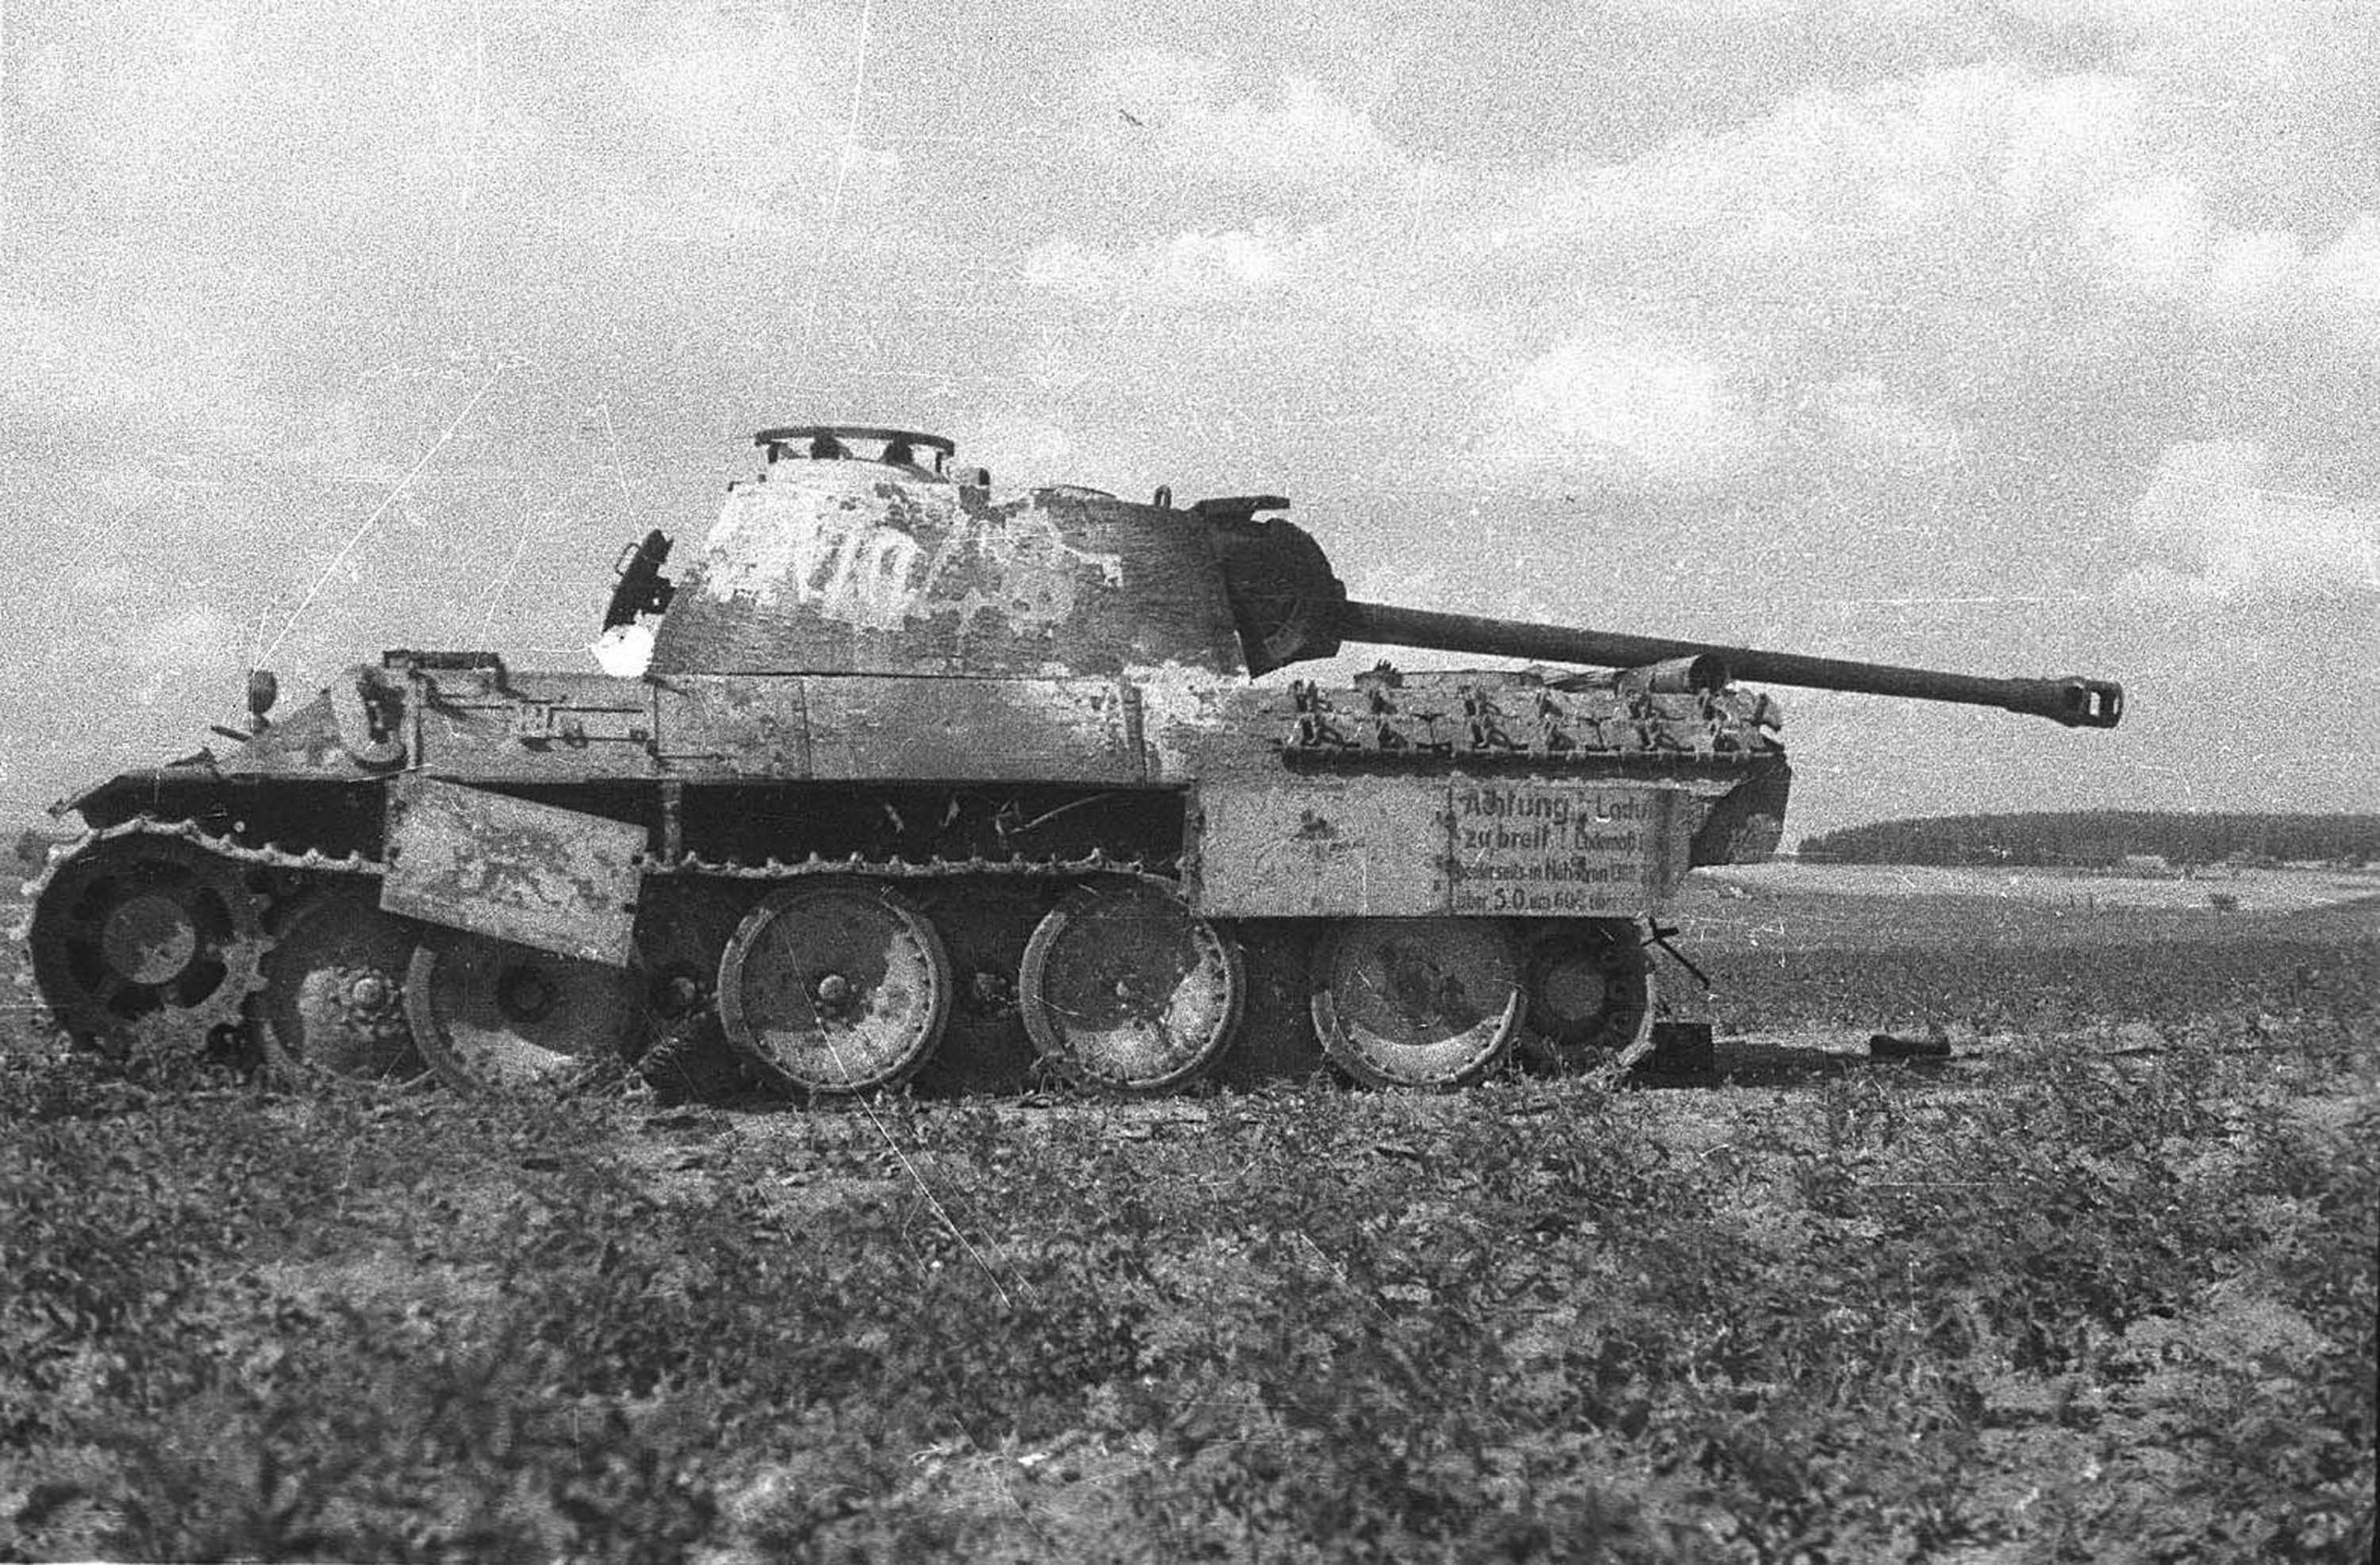 As the Germans crushed tanks 51